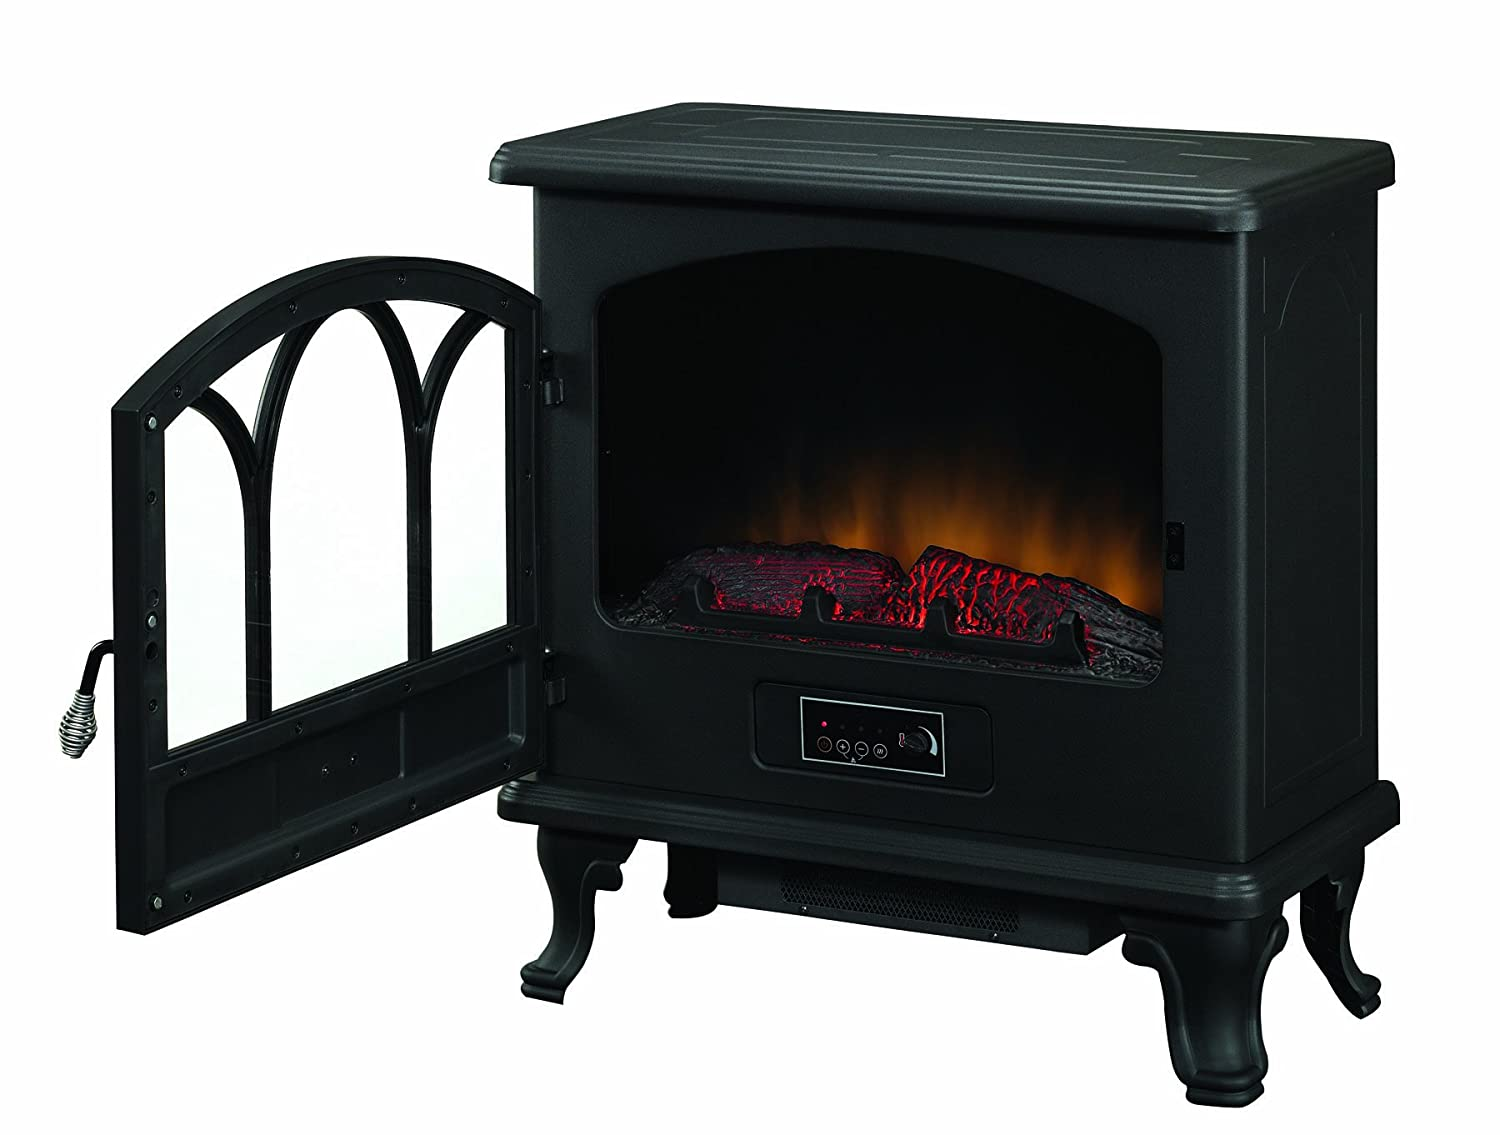 Duraflame Large Stove Heater Black Dfs 750 1 New Free Shipping